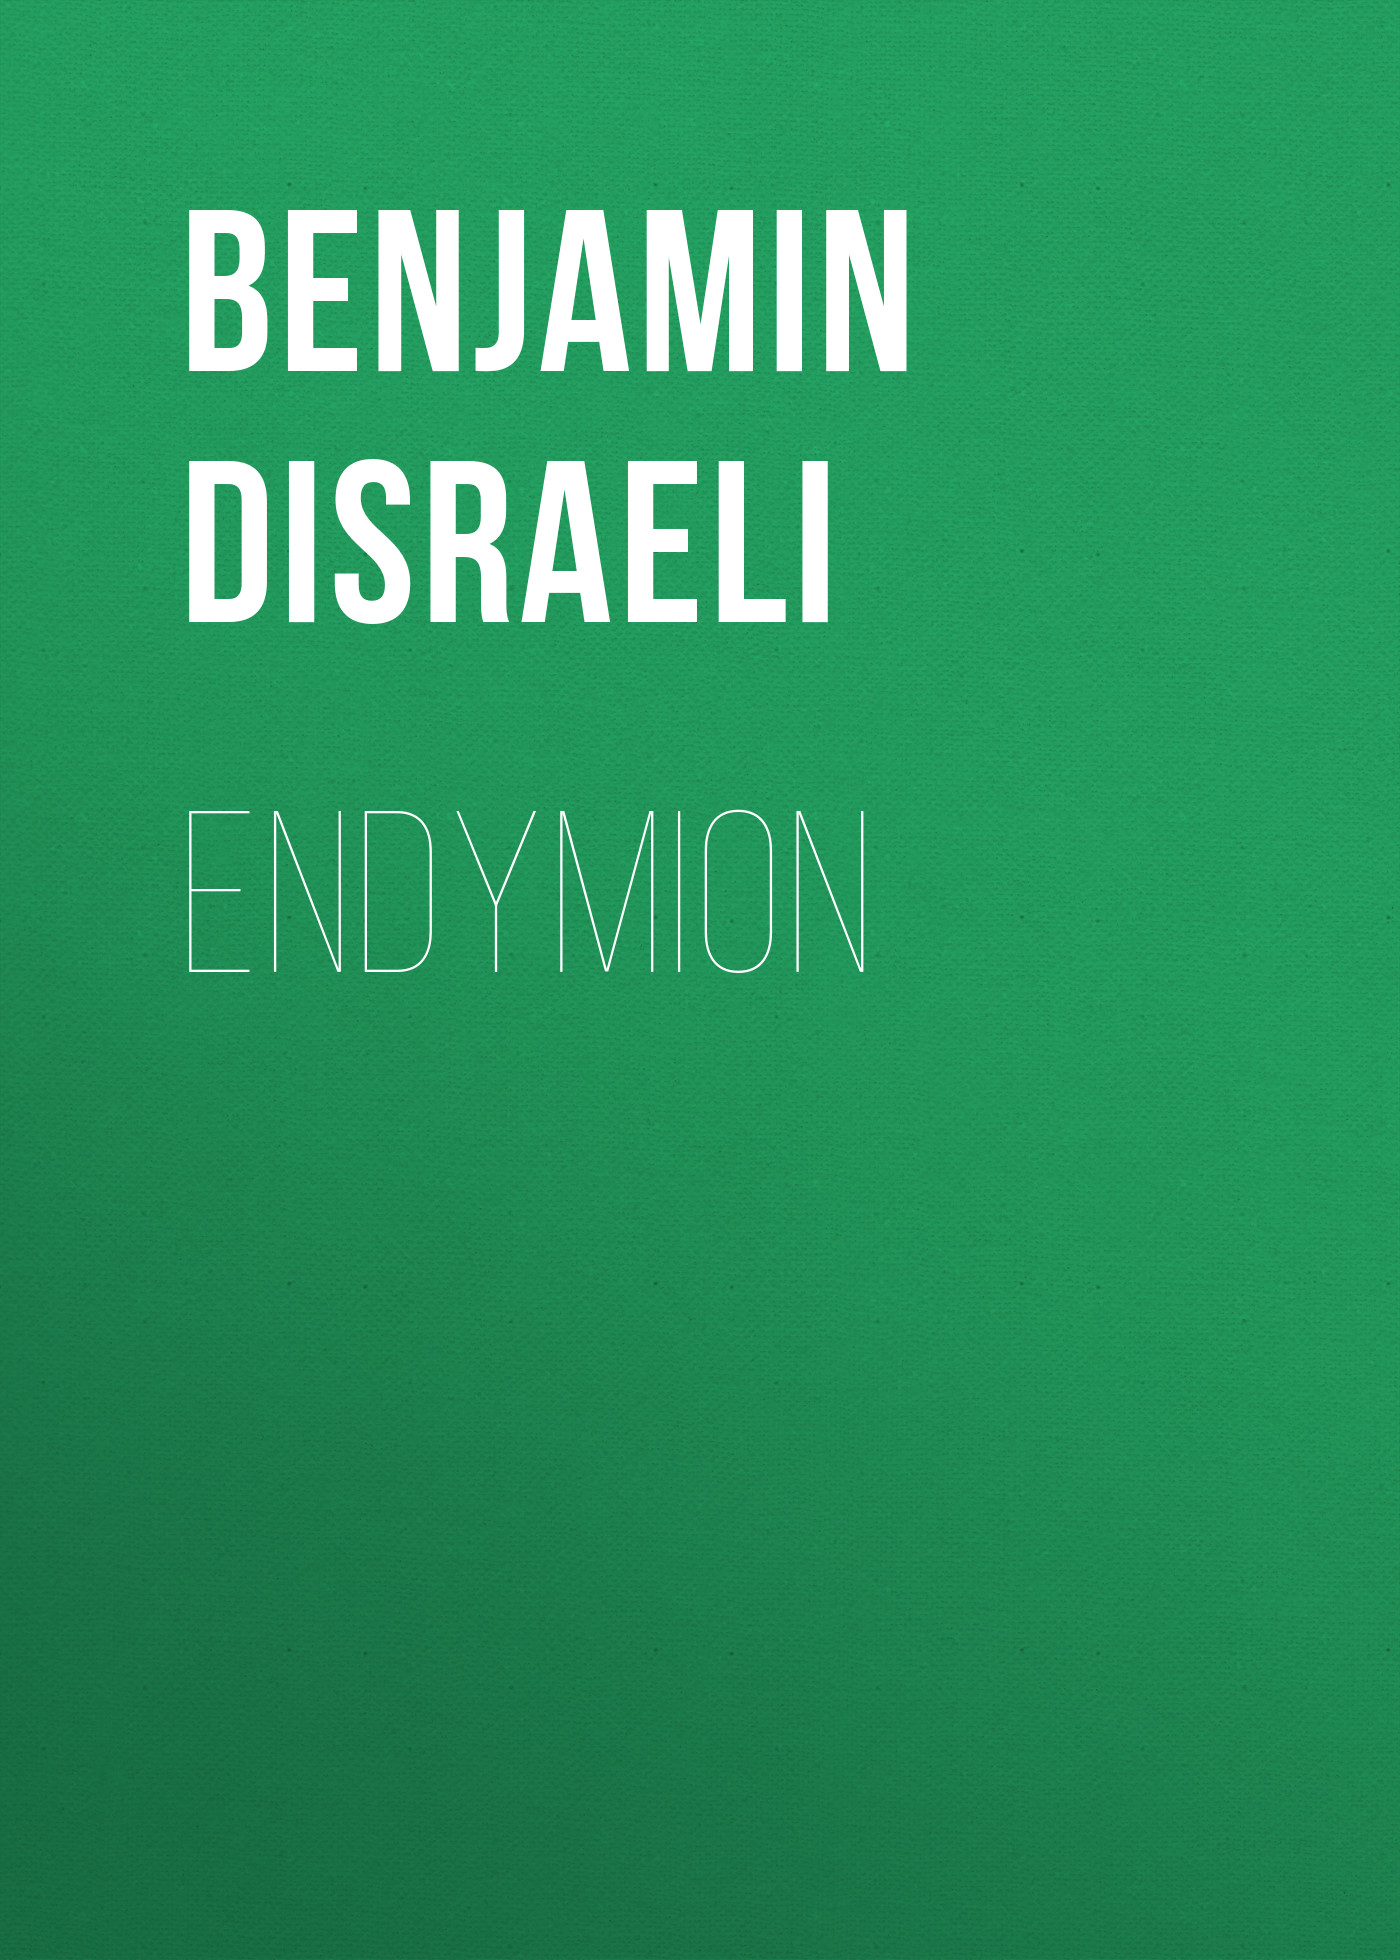 Benjamin Disraeli Endymion disraeli benjamin disraeli in outline being a biography of benjamin disraeli and an abridgment of all his novels with full index page 10 page 7